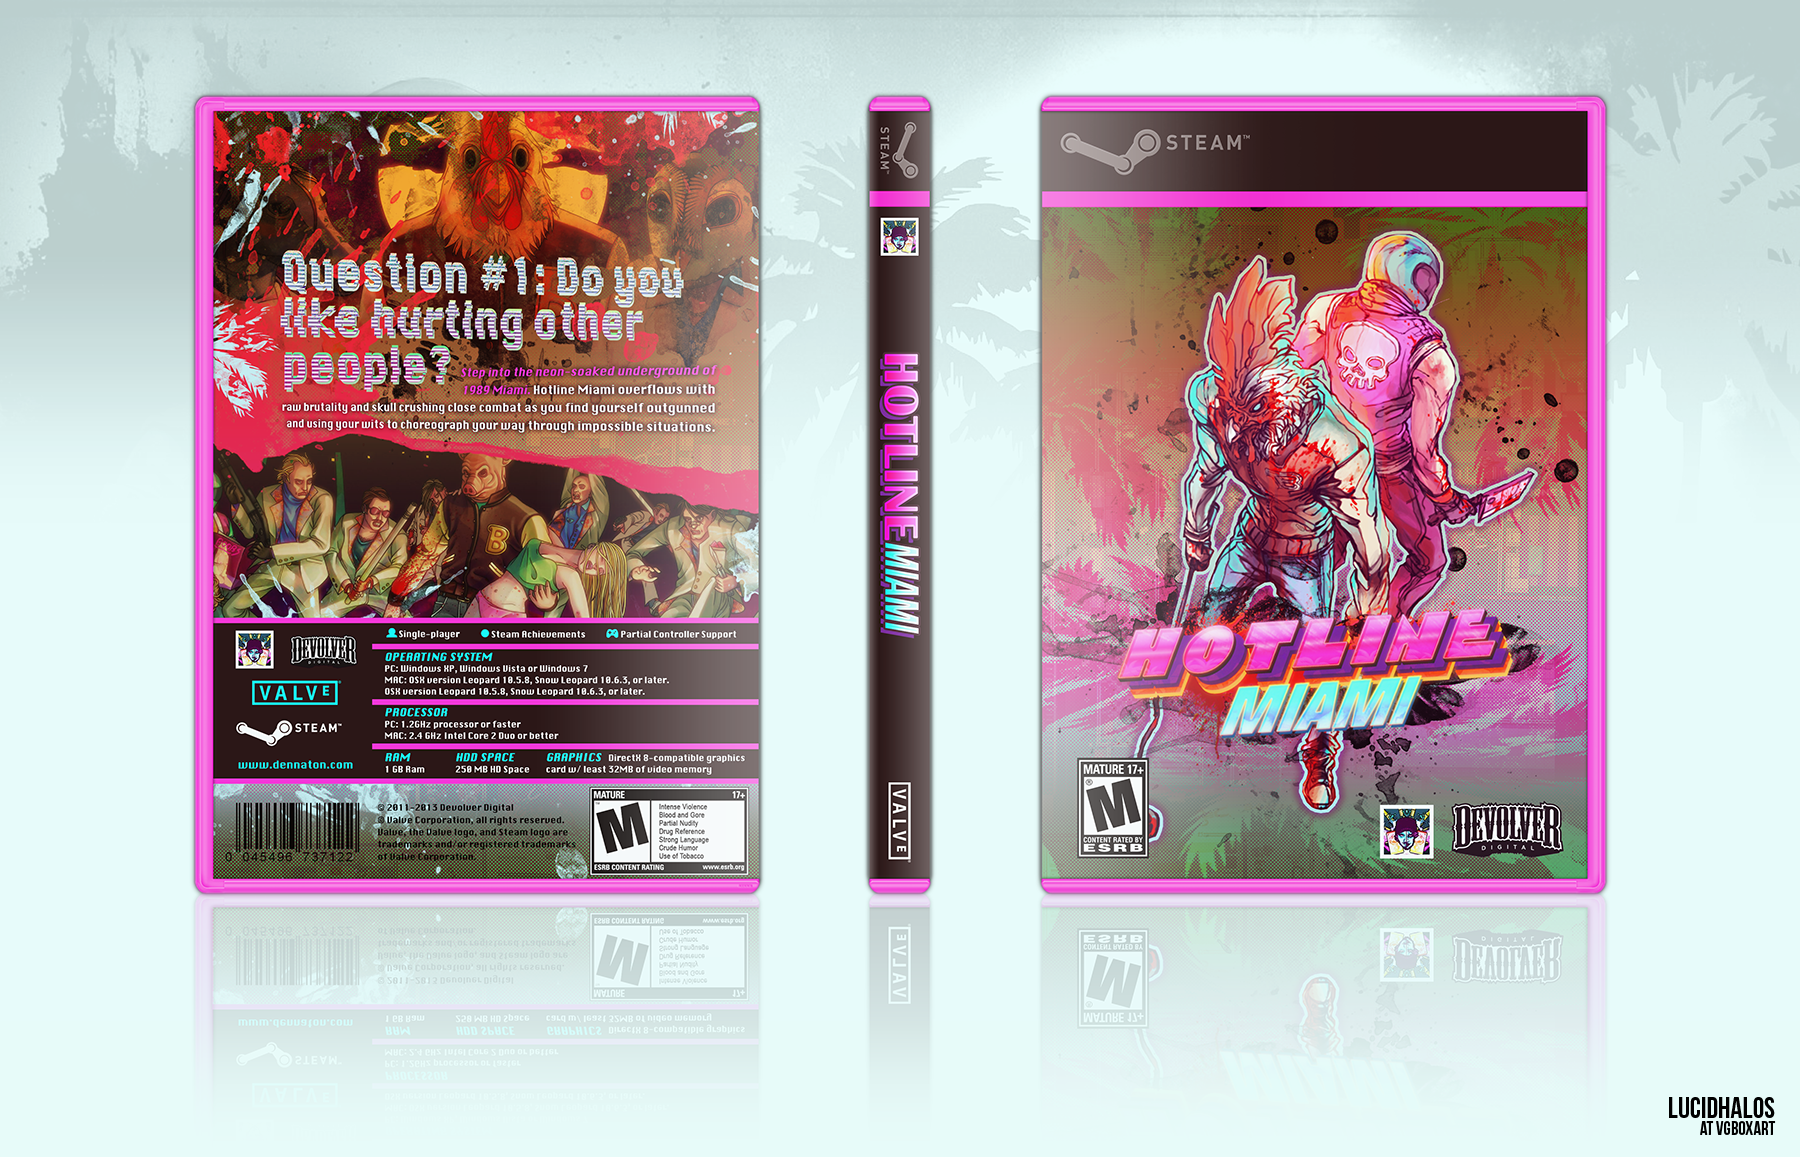 Hotline Miami box cover